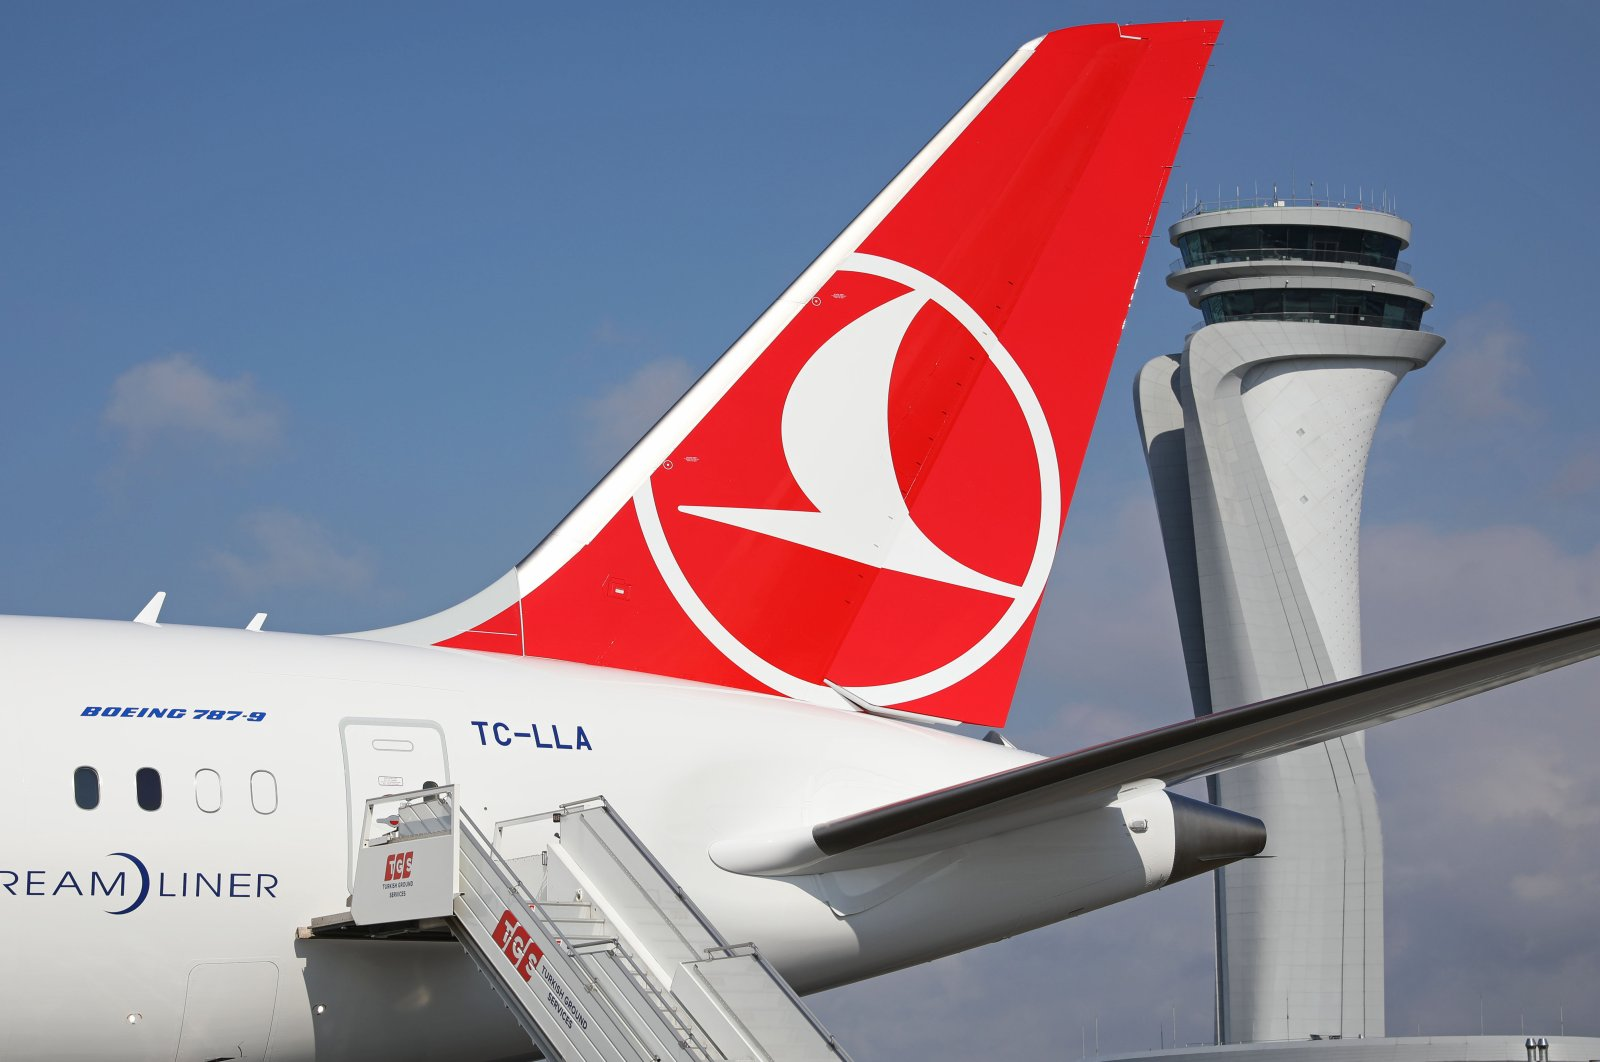 Turkish Airlines' Boeing 787-9 passenger jet seen at Istanbul Airport. (File Photo)